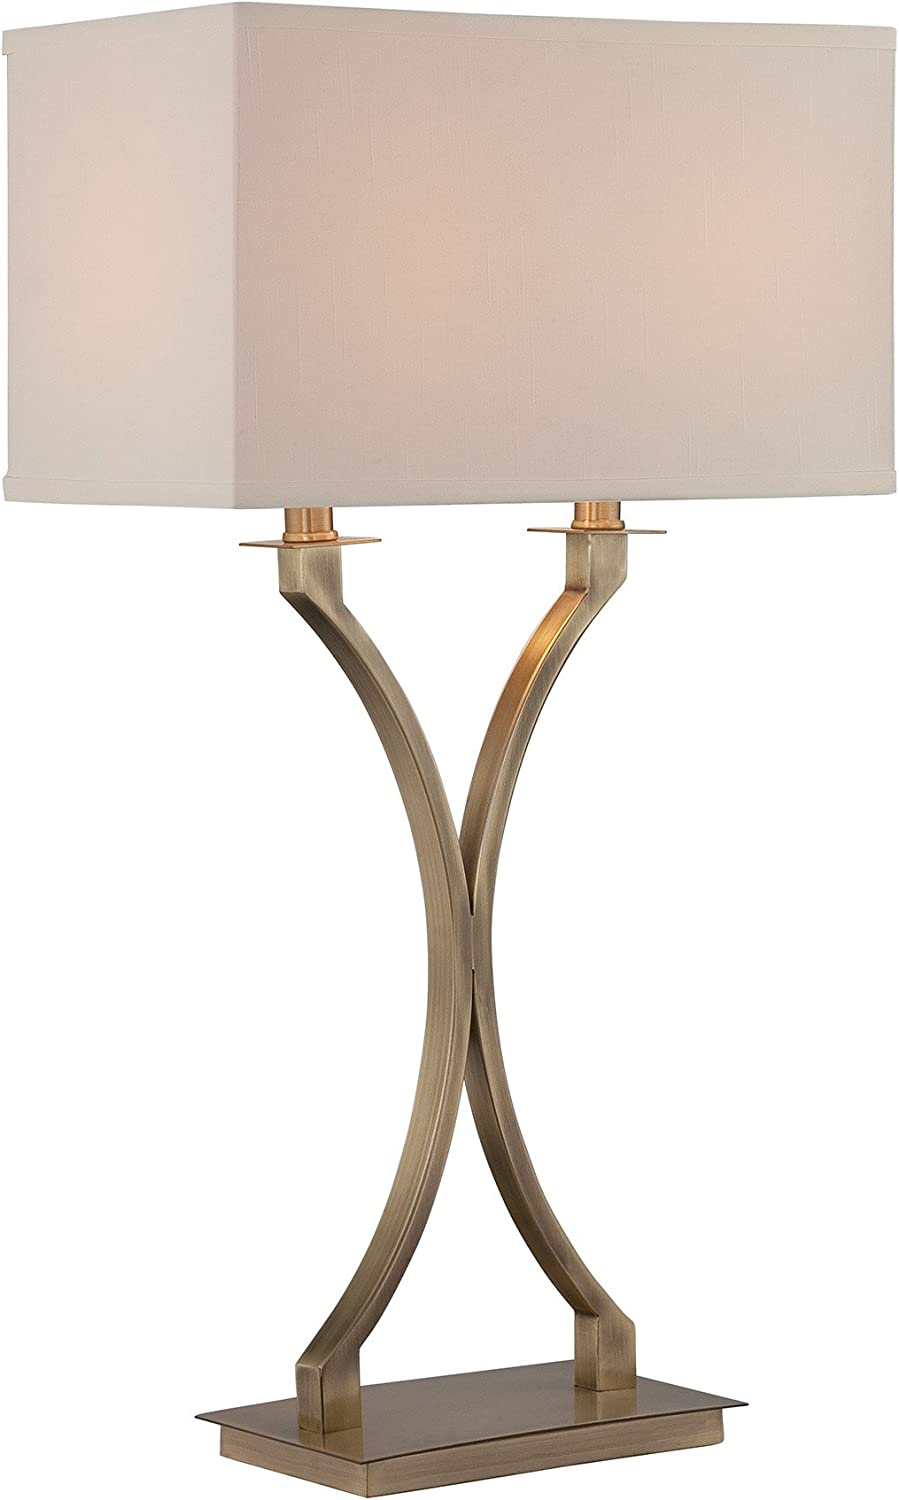 Lite Source LS-22615 Cruzito Table Lamp, 29  x 9  x 16 , Antique Brass Off-White